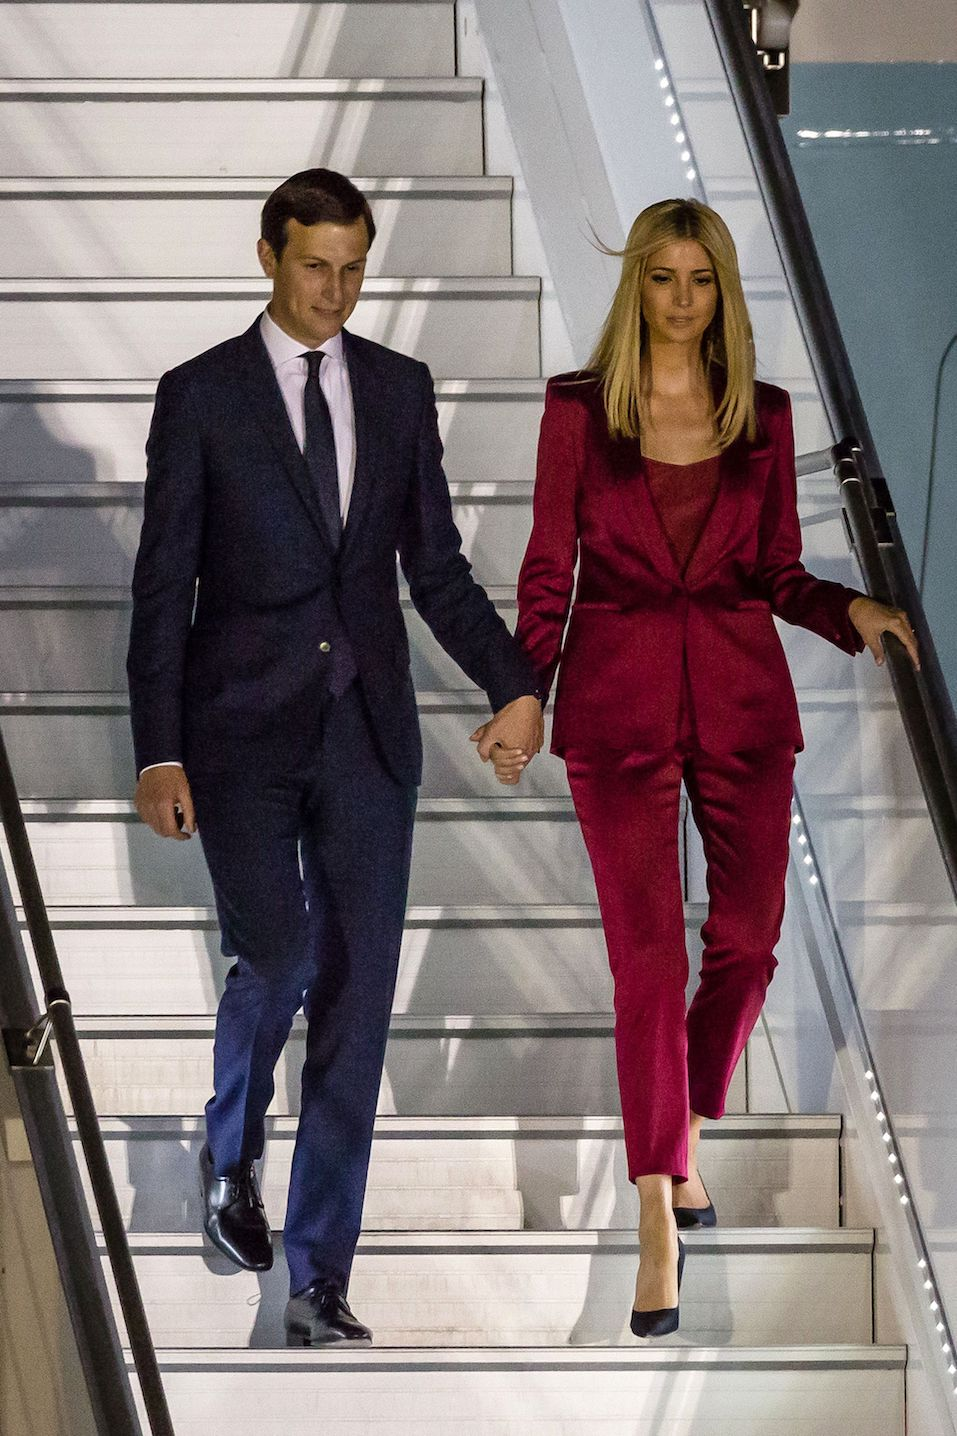 Ivanka Trump and Jared Kushner step off Air Force One